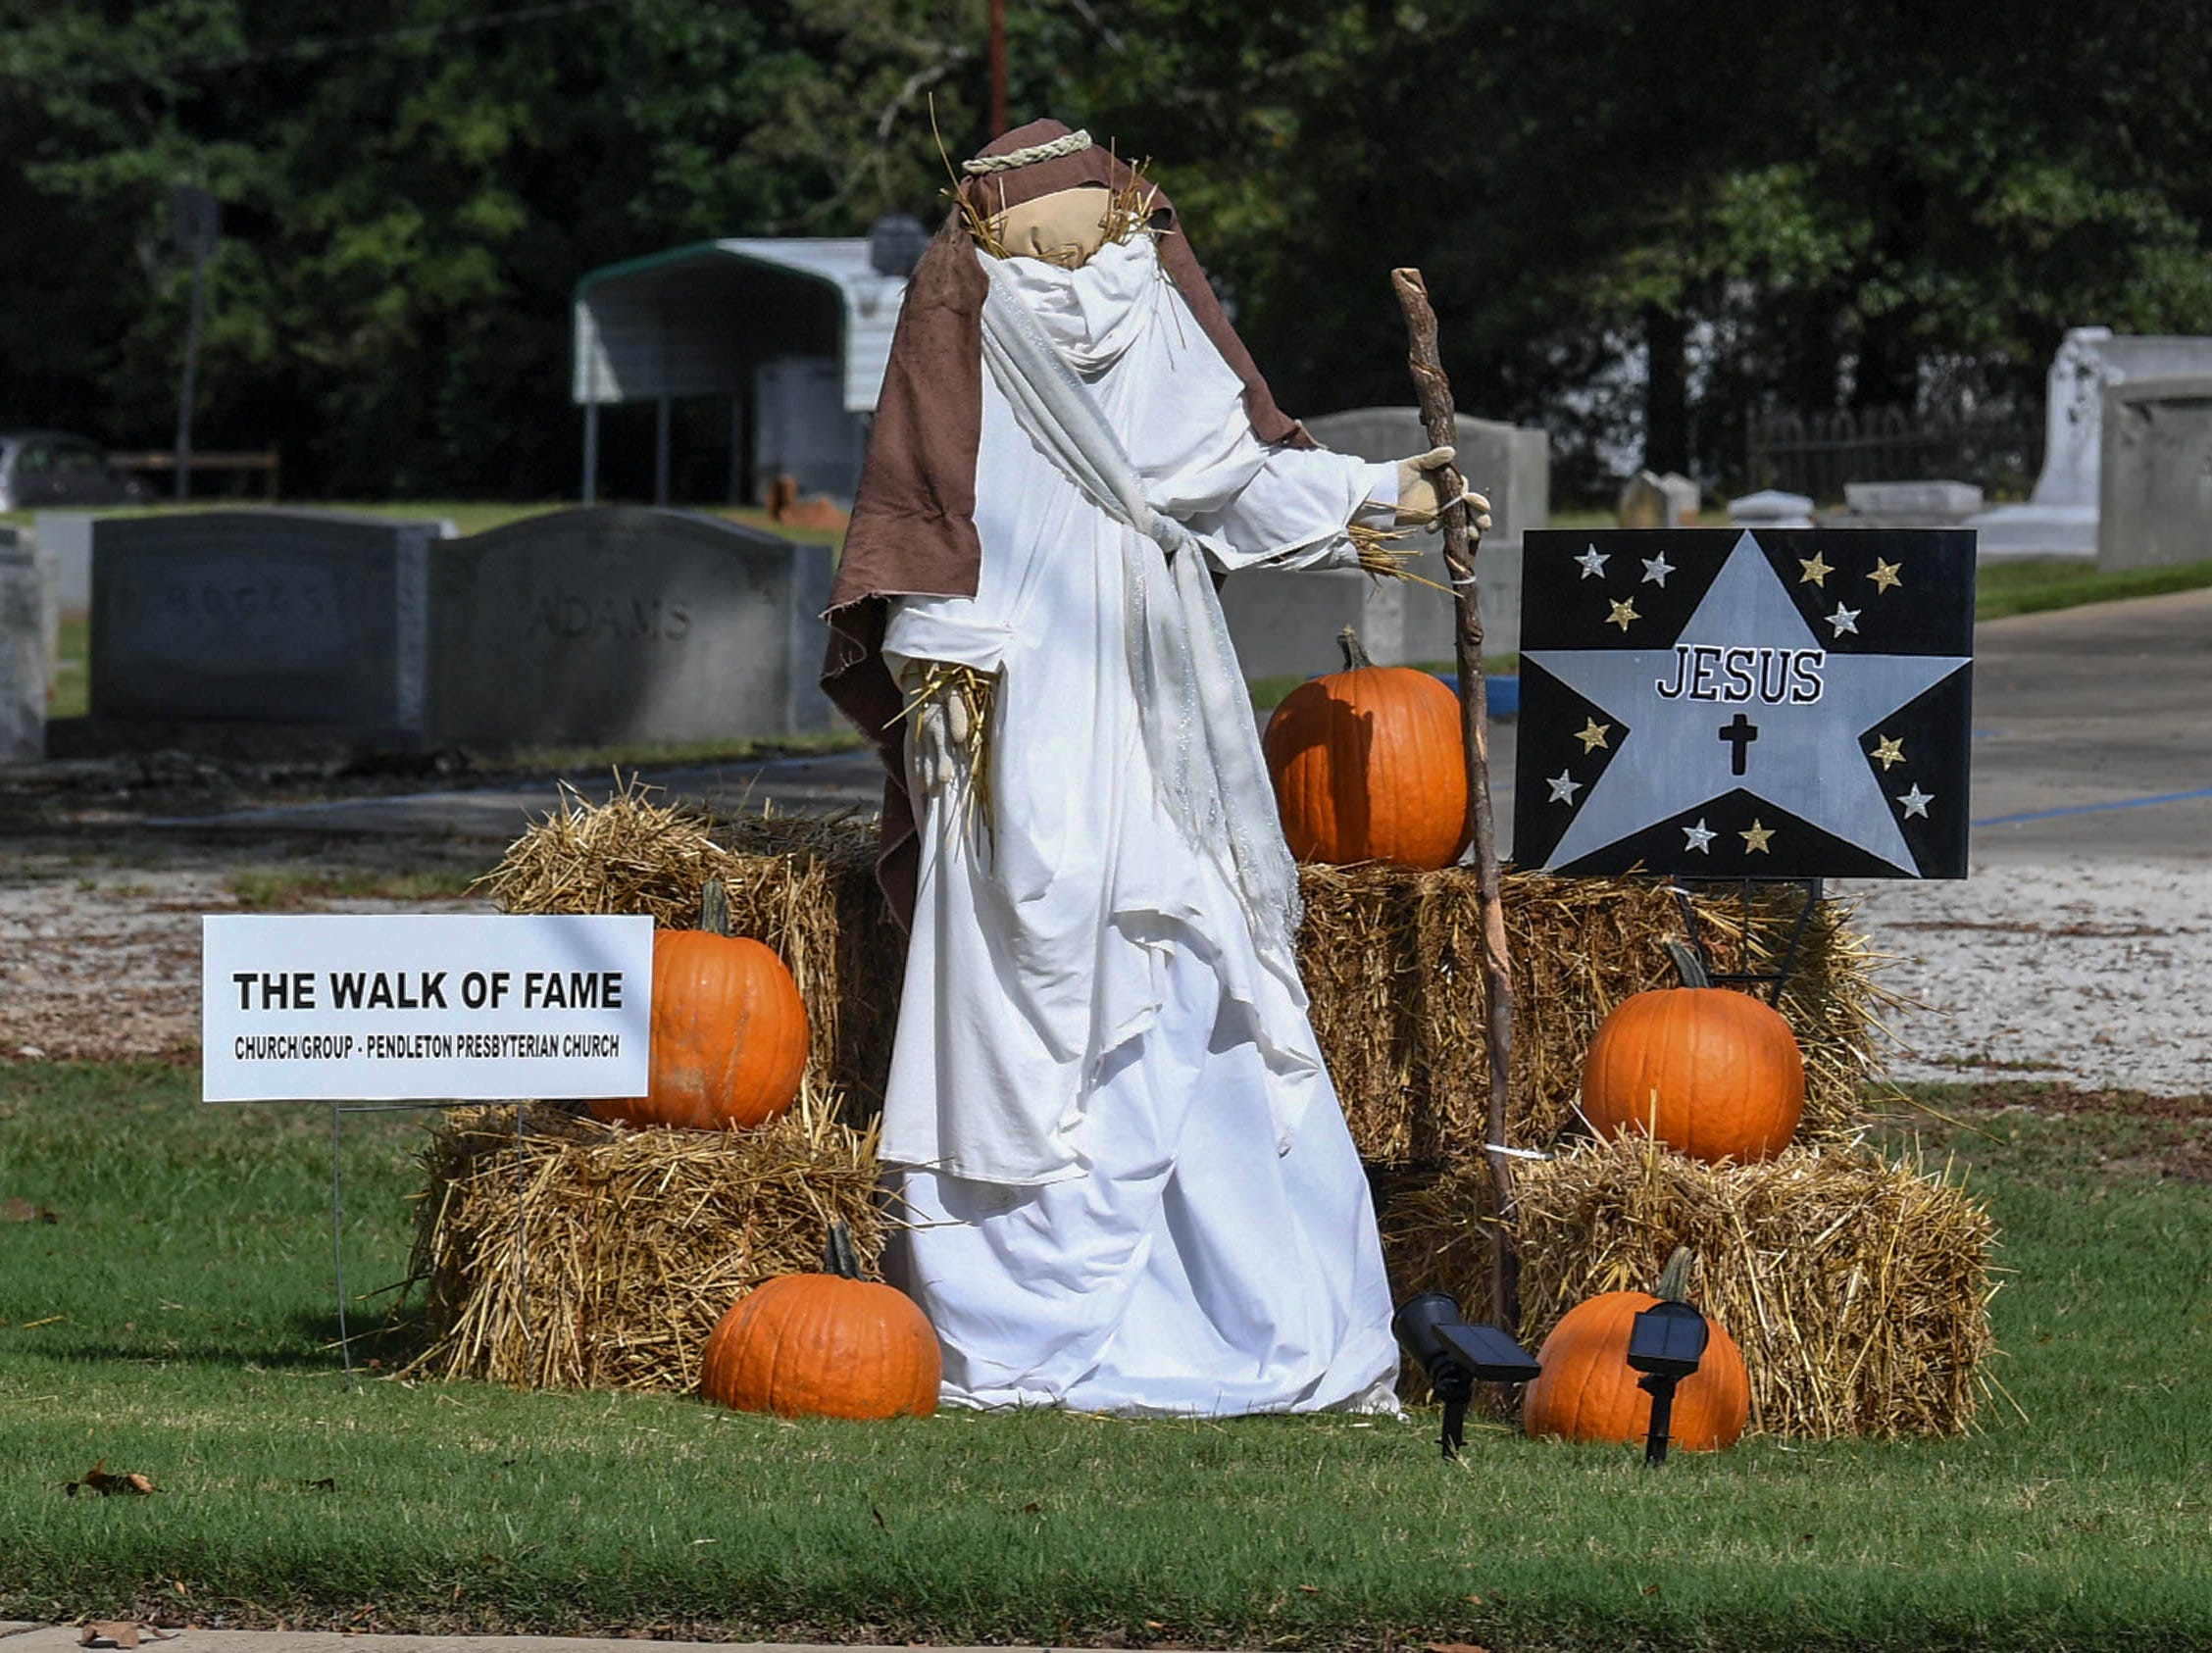 """""""The walk of fame"""" by Pendleton Presbyterian Church is one of many displays in The Pendleton Scarecrow Contest leading up to the 20th Fall Harvest Festival in the village green Saturday, October 6 from 10 a.m. to 5 p.m. The annual contest in Pendleton for businesses, individuals, groups, organizations and churches who create fun not scary Scarecrows. People driving around the downtown square can see different theme scarecrows."""